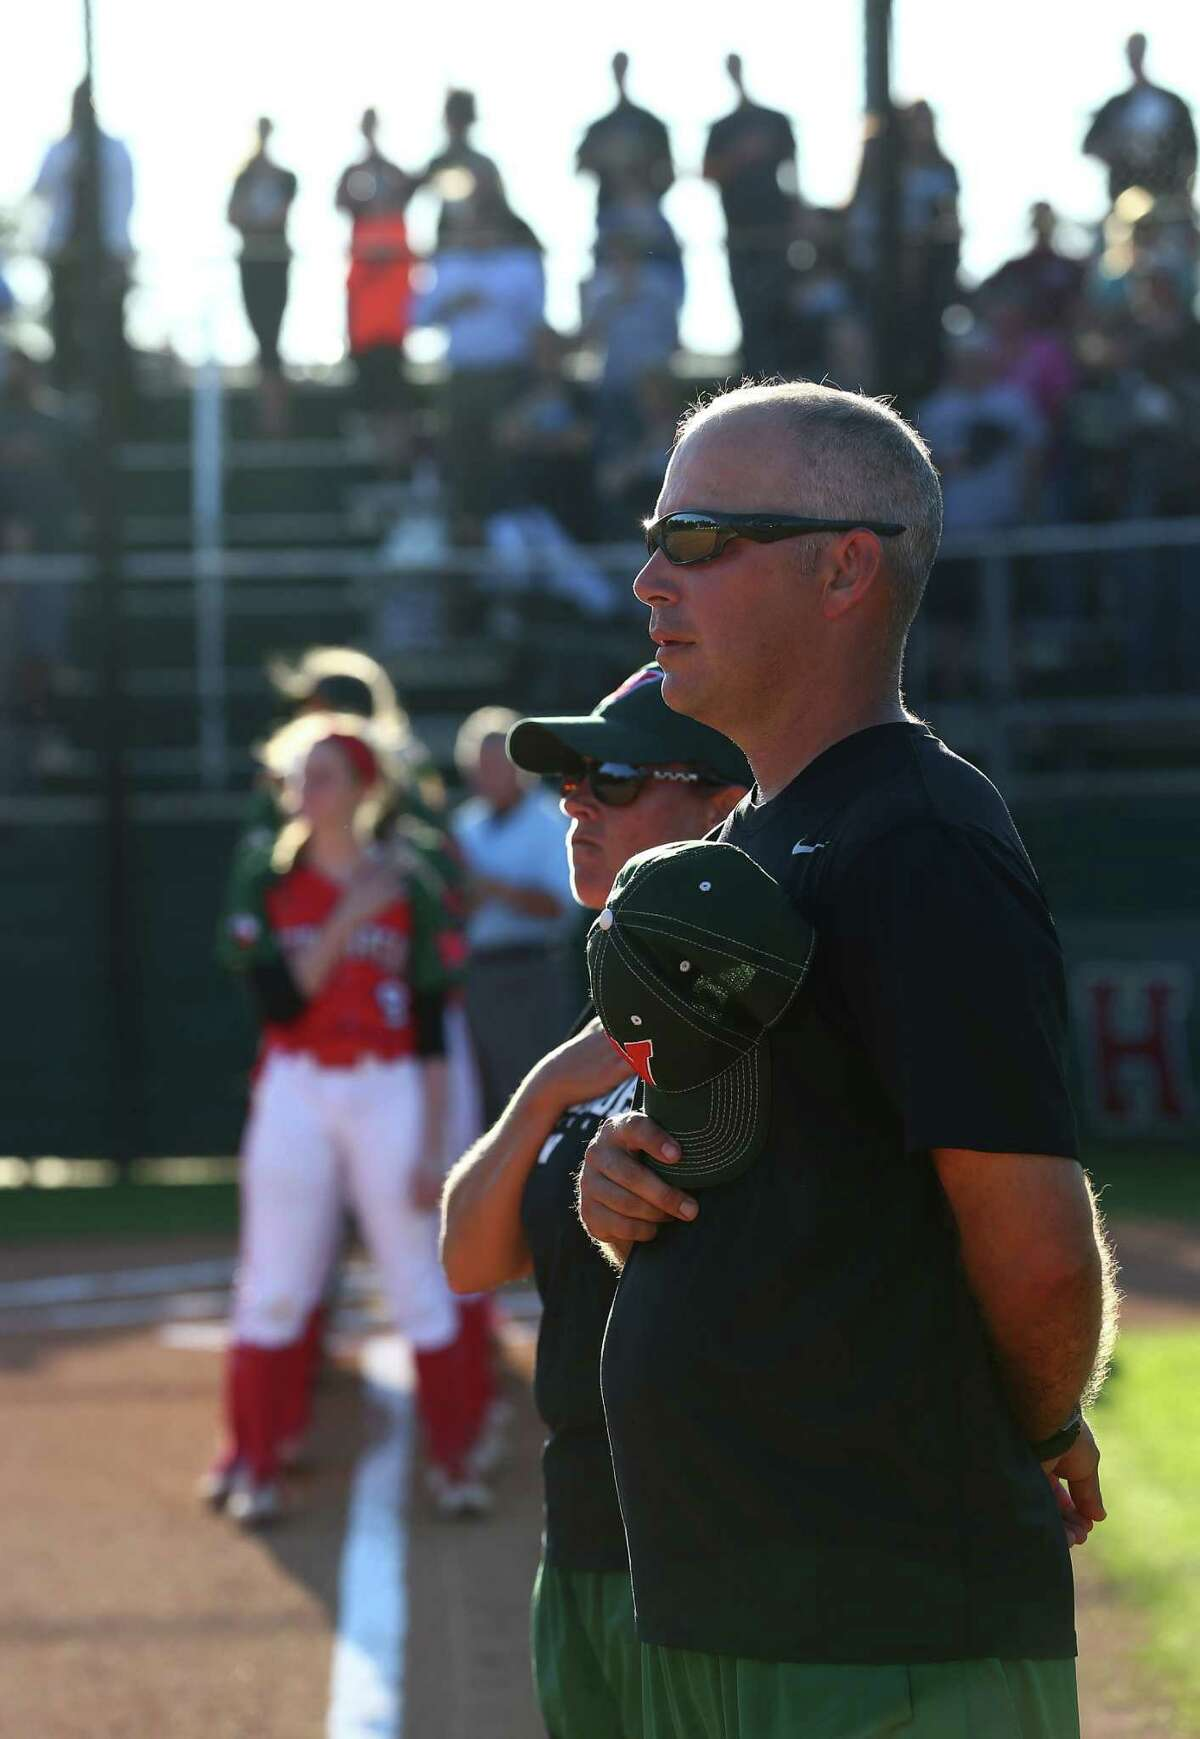 Head Coach Tim Borths, right, and Assistant Coach Paula Miller listen as the National Anthem is played before a softball game between the Woodlands Lady Highlanders and the Kingwood Mustangs, at The Woodlands High School, Friday, April 22, 2016, in The Woodlands.